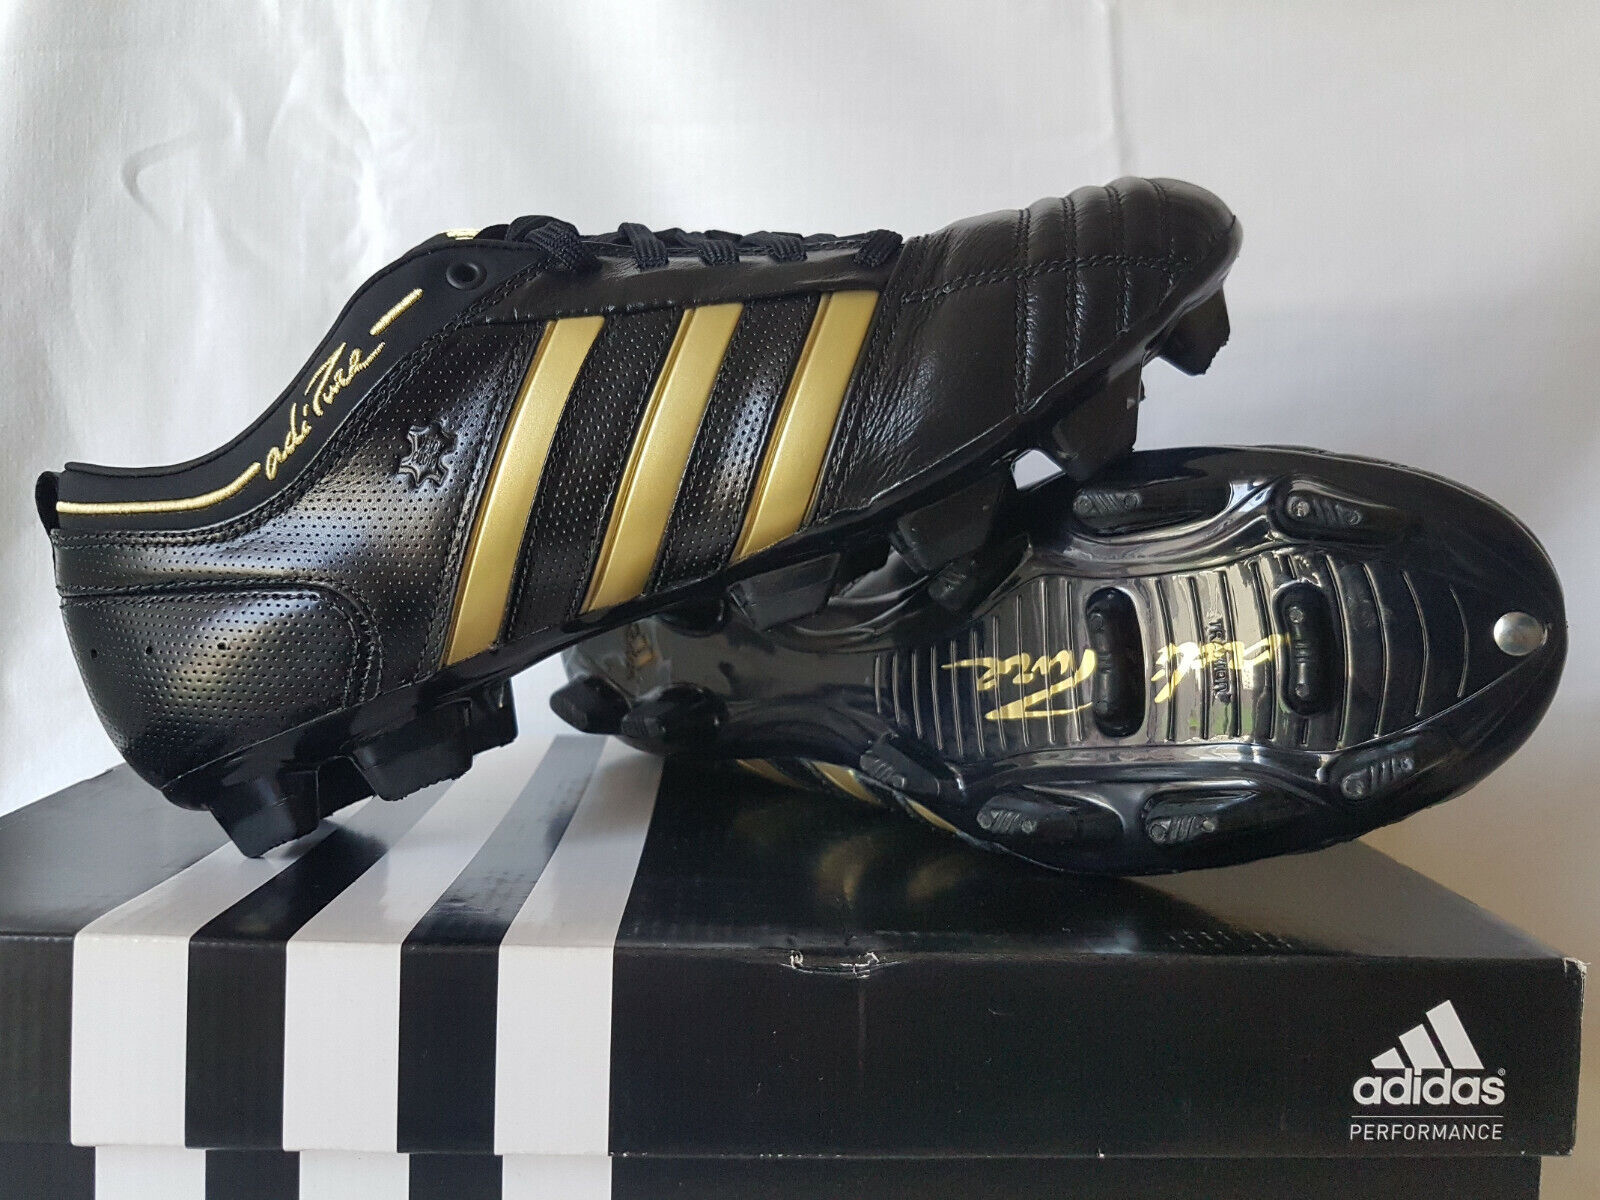 Adidas AdiPure II TRX FG K-leather football schuhe soccer G00795, US 7.5 UK 7